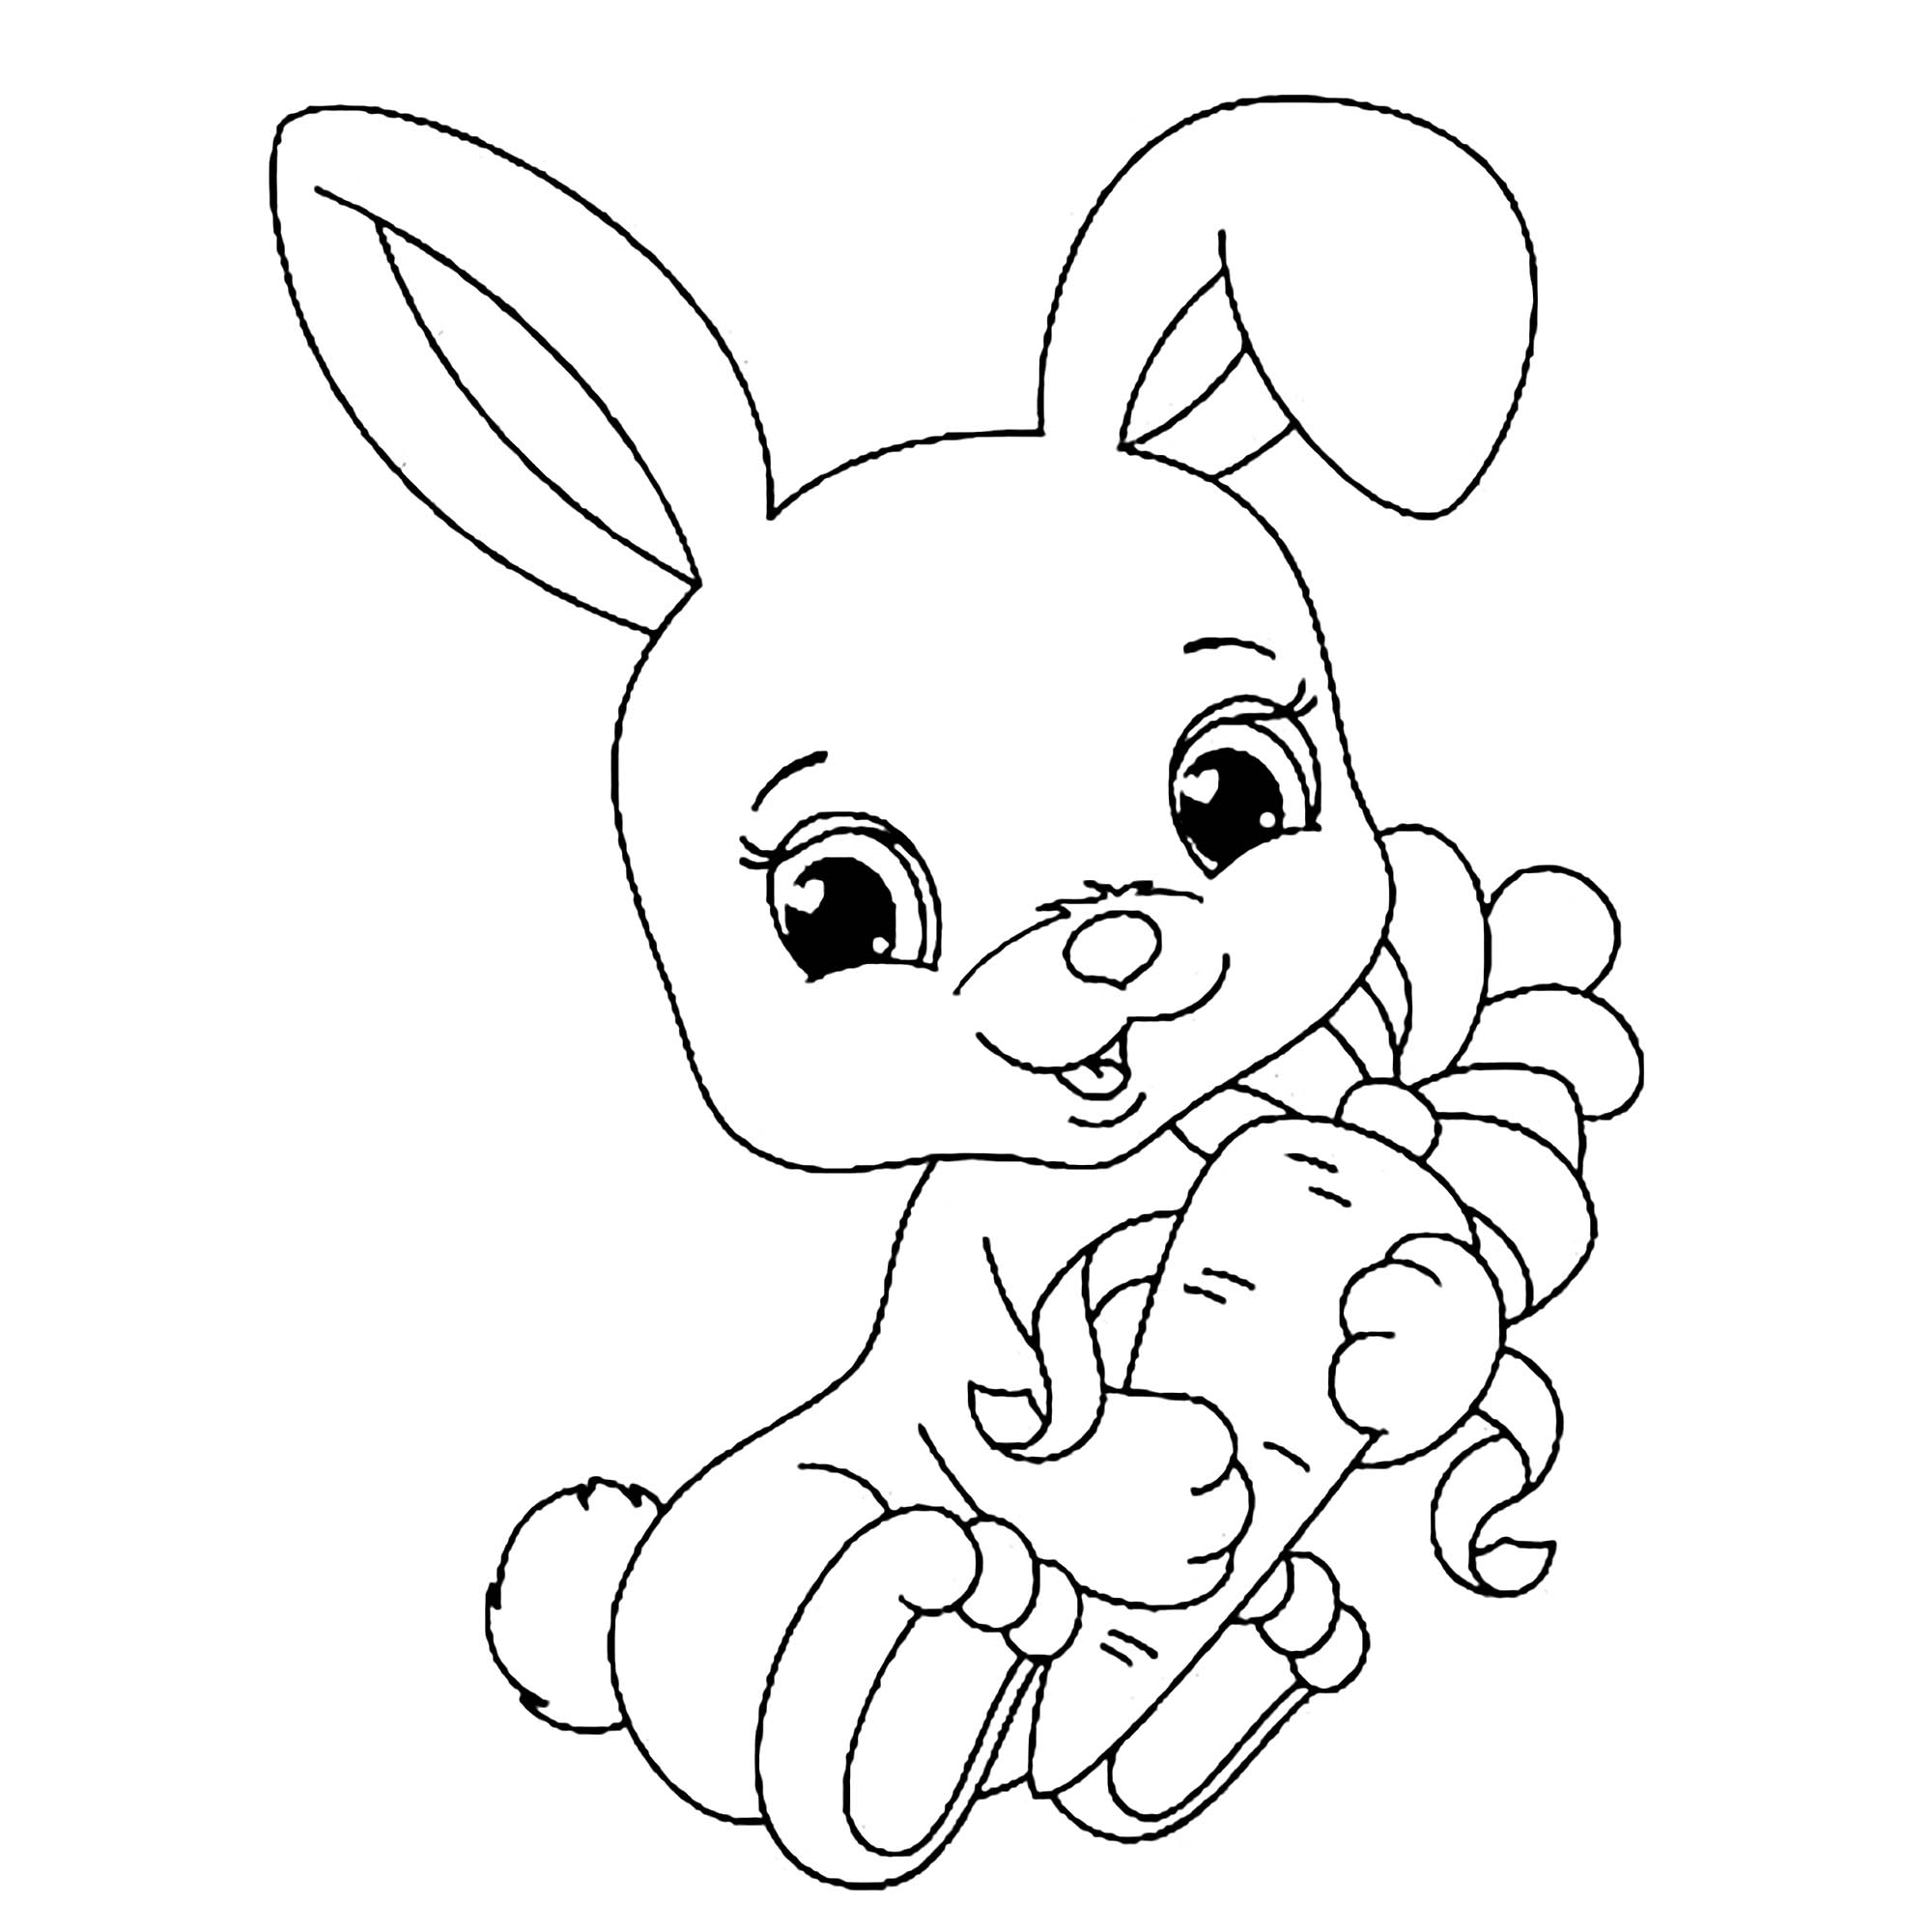 rabbit pictures for kids for colouring rabbit free to color for kids rabbit kids coloring pages colouring kids for pictures for rabbit